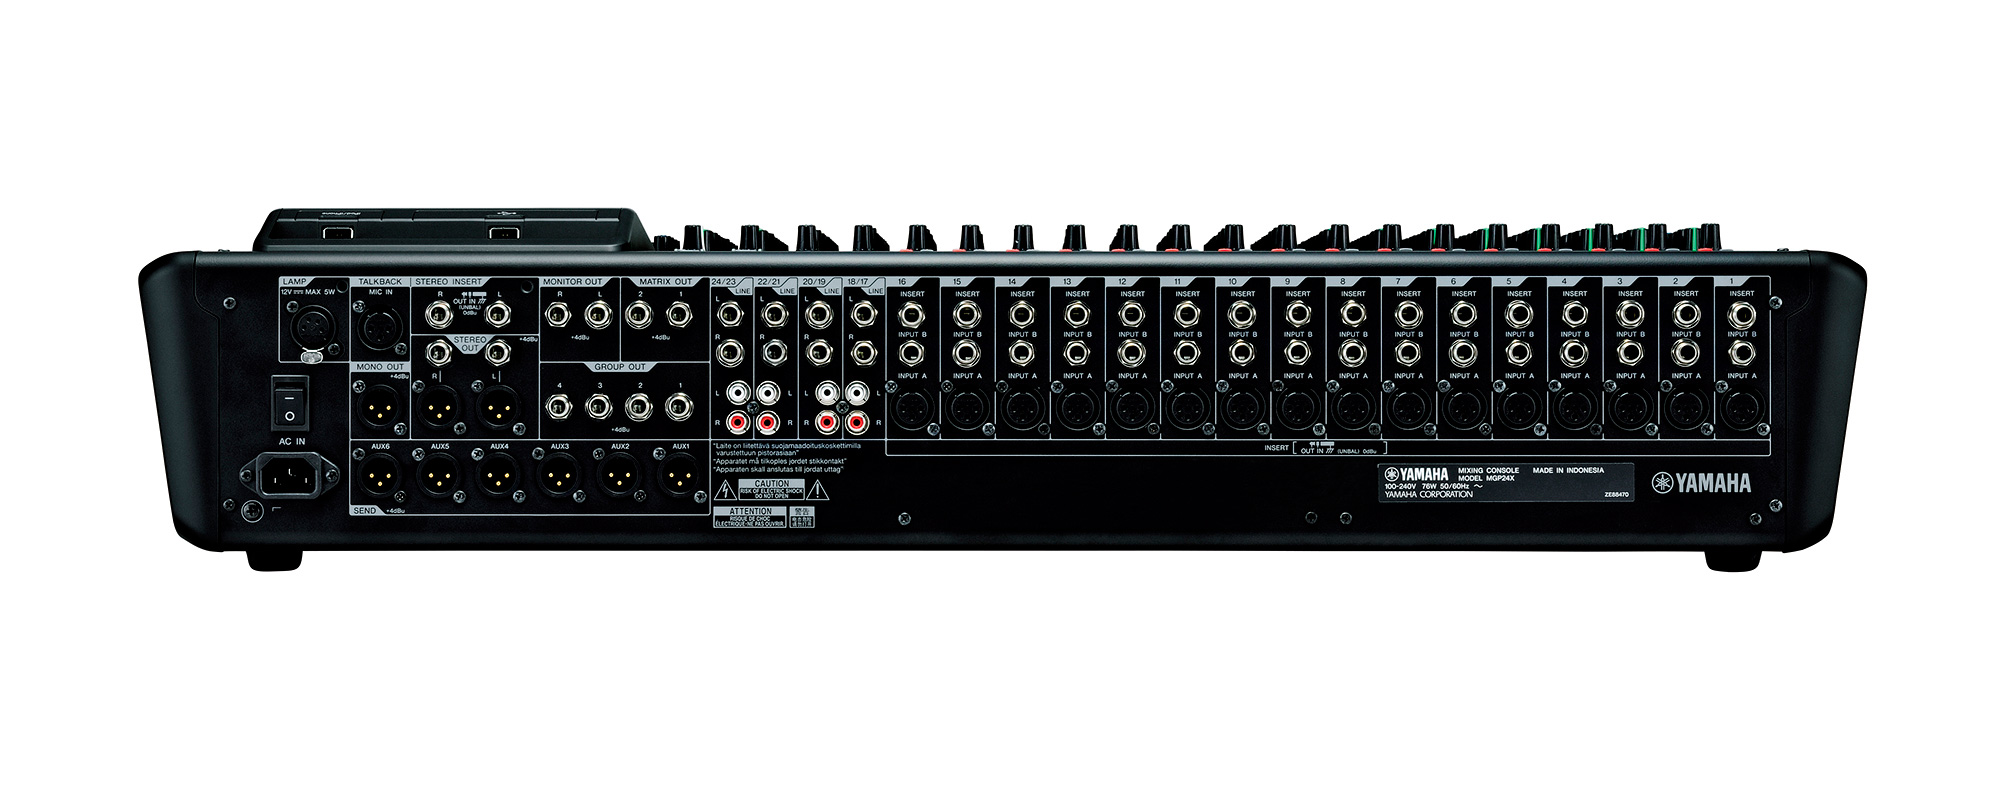 Yamaha mgp24x 24 channel premium mixing console for Yamaha sound console